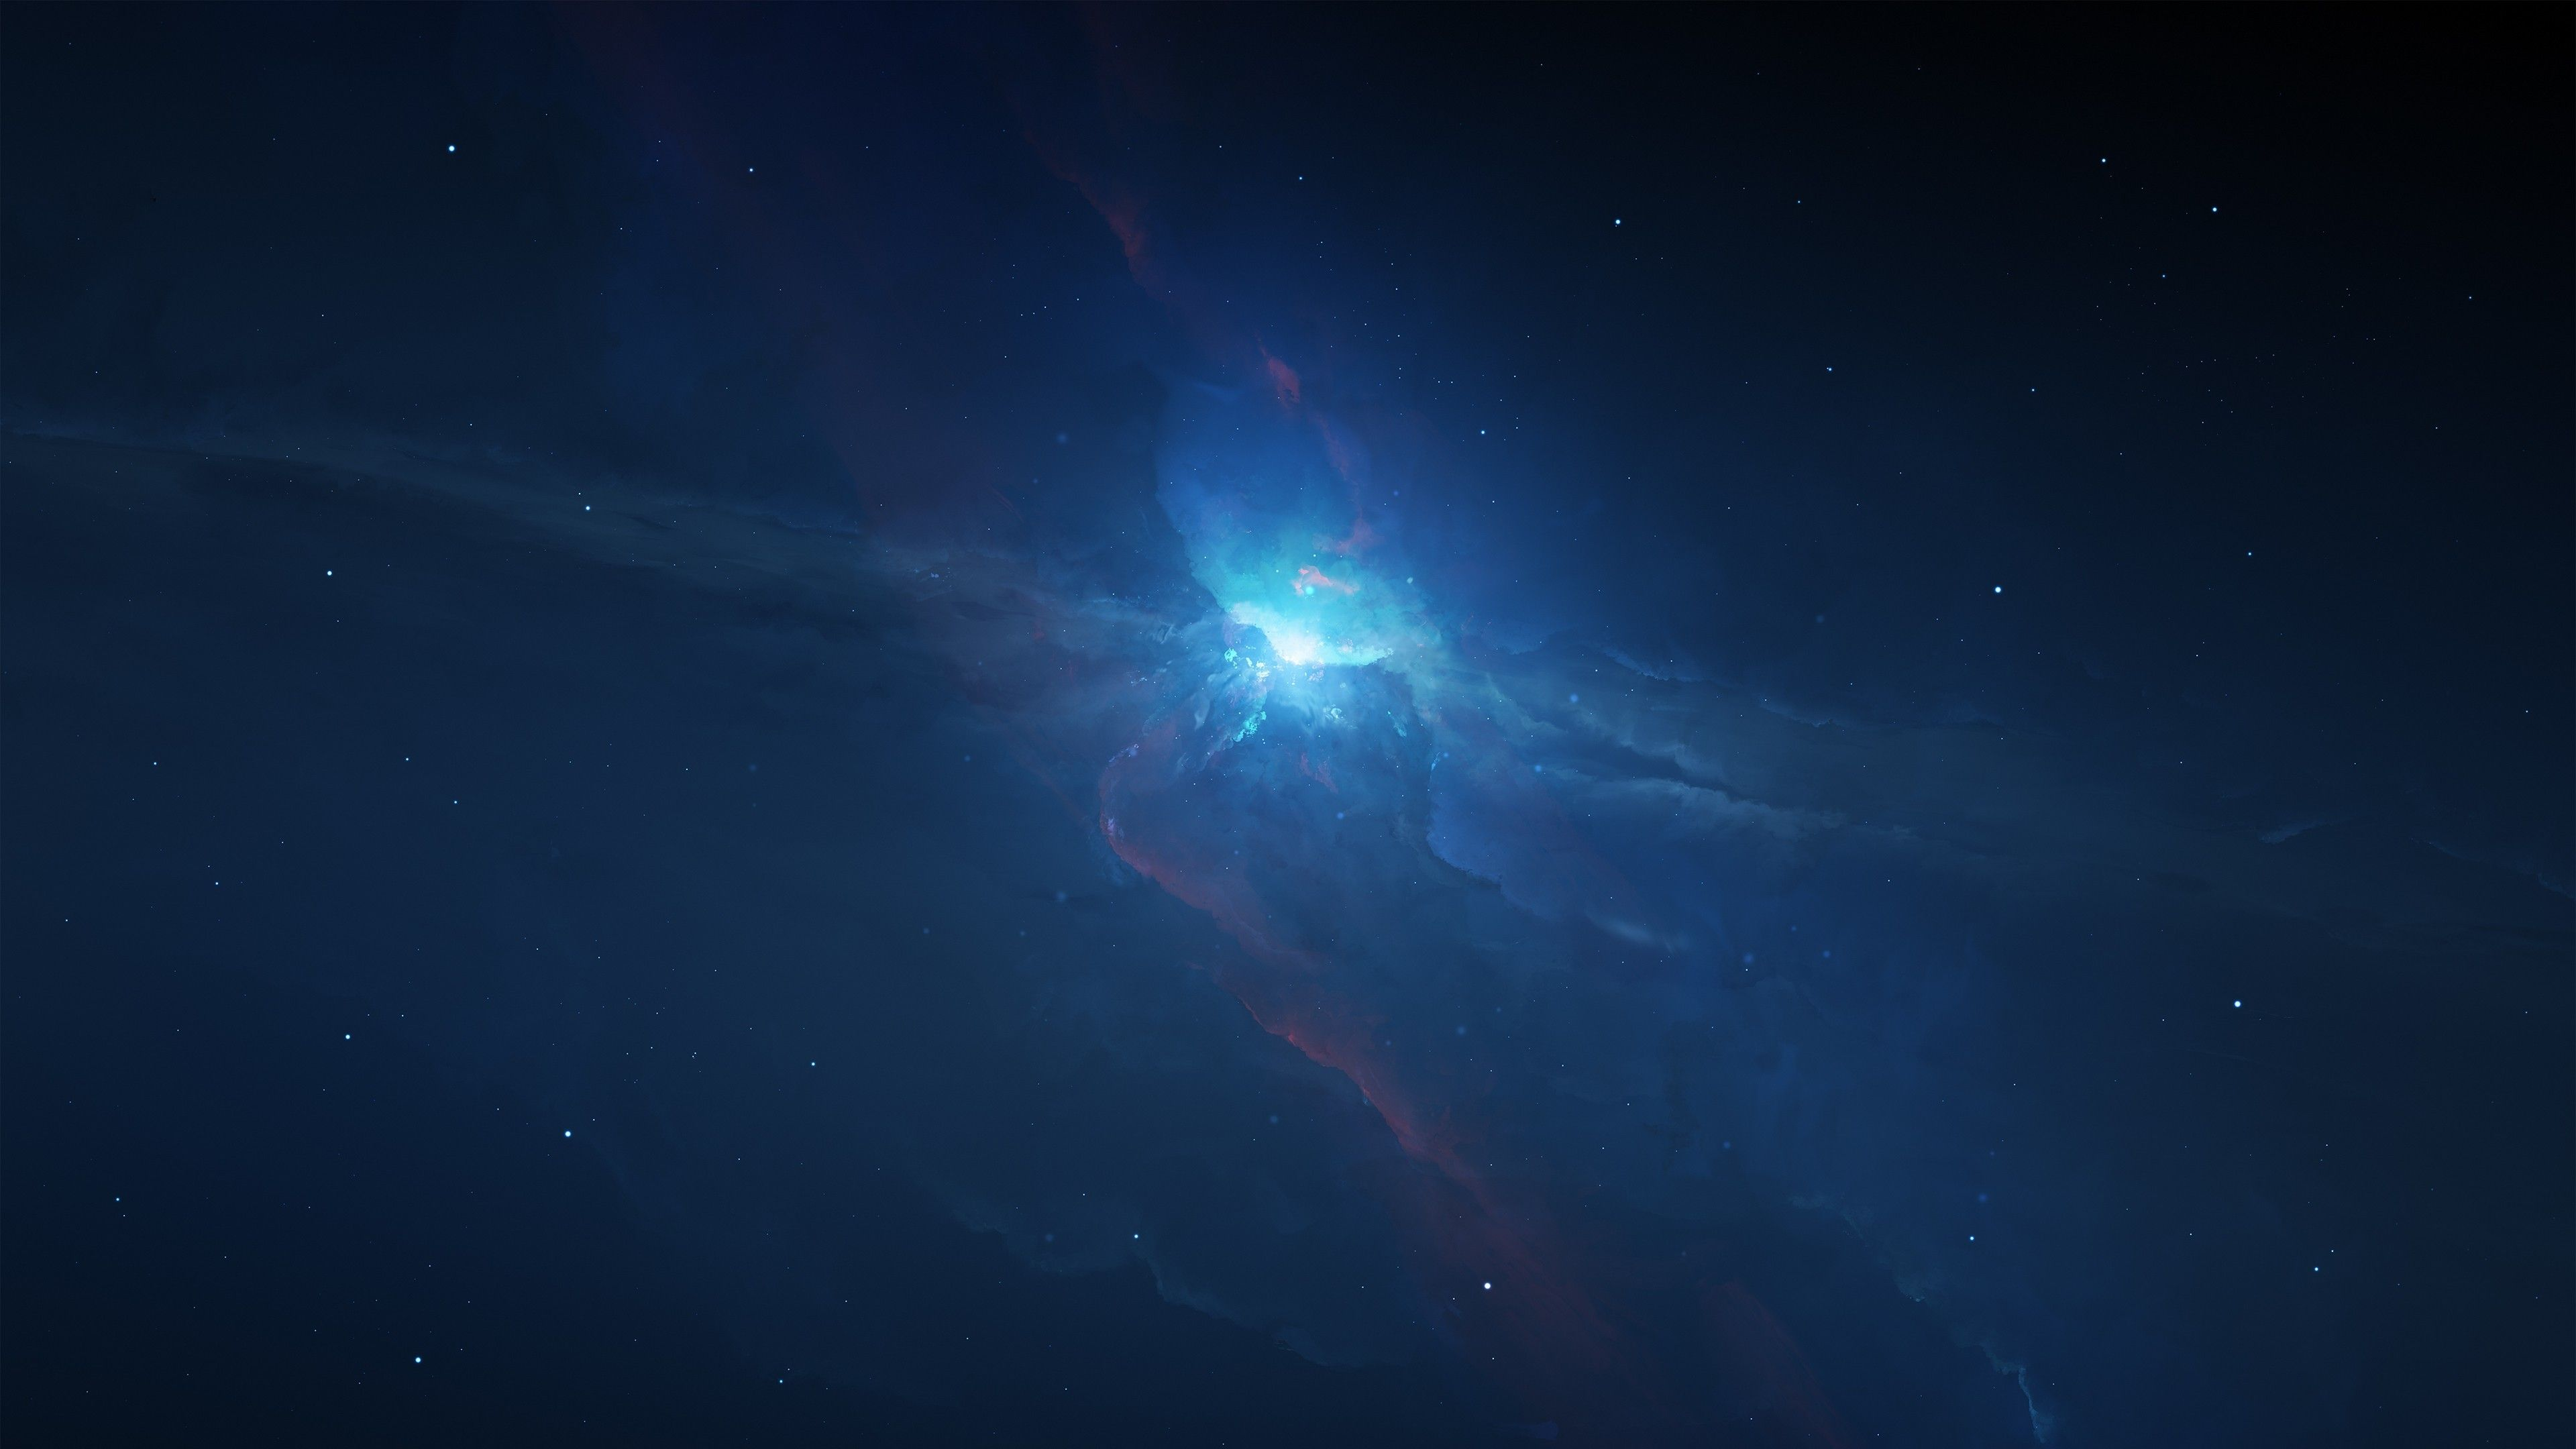 Uhd Space Wallpapers Top Free Uhd Space Backgrounds Wallpaperaccess